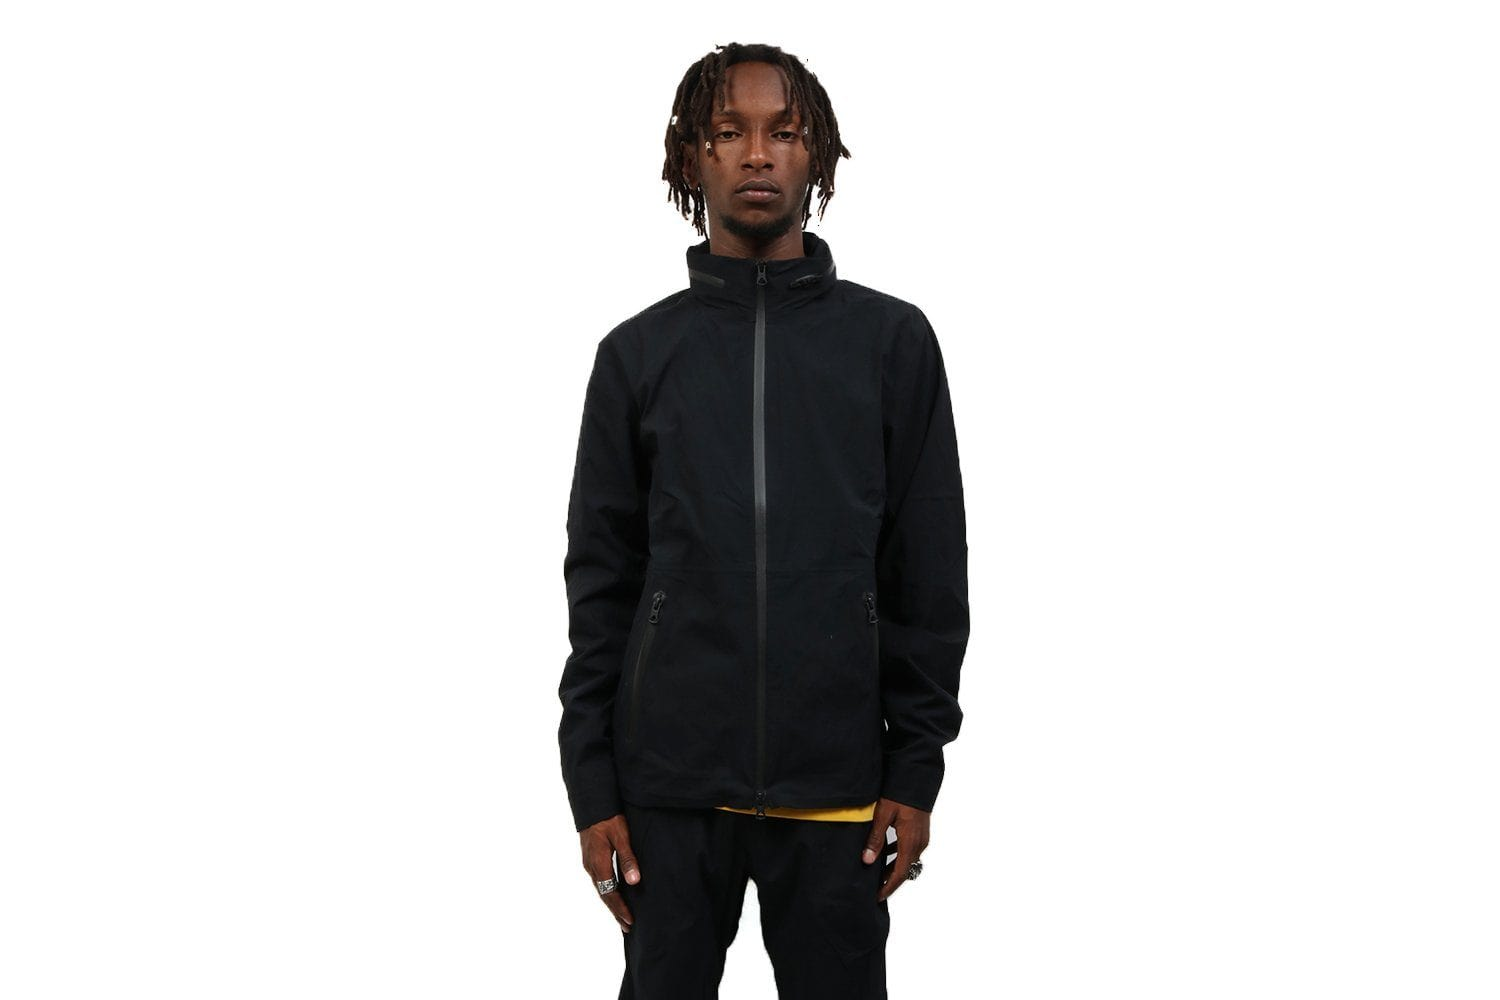 MENS WOVEN STRETCH NYLON N279 STOW AWAY HOOD - RC-4110 MENS SOFTGOODS REIGNING CHAMP